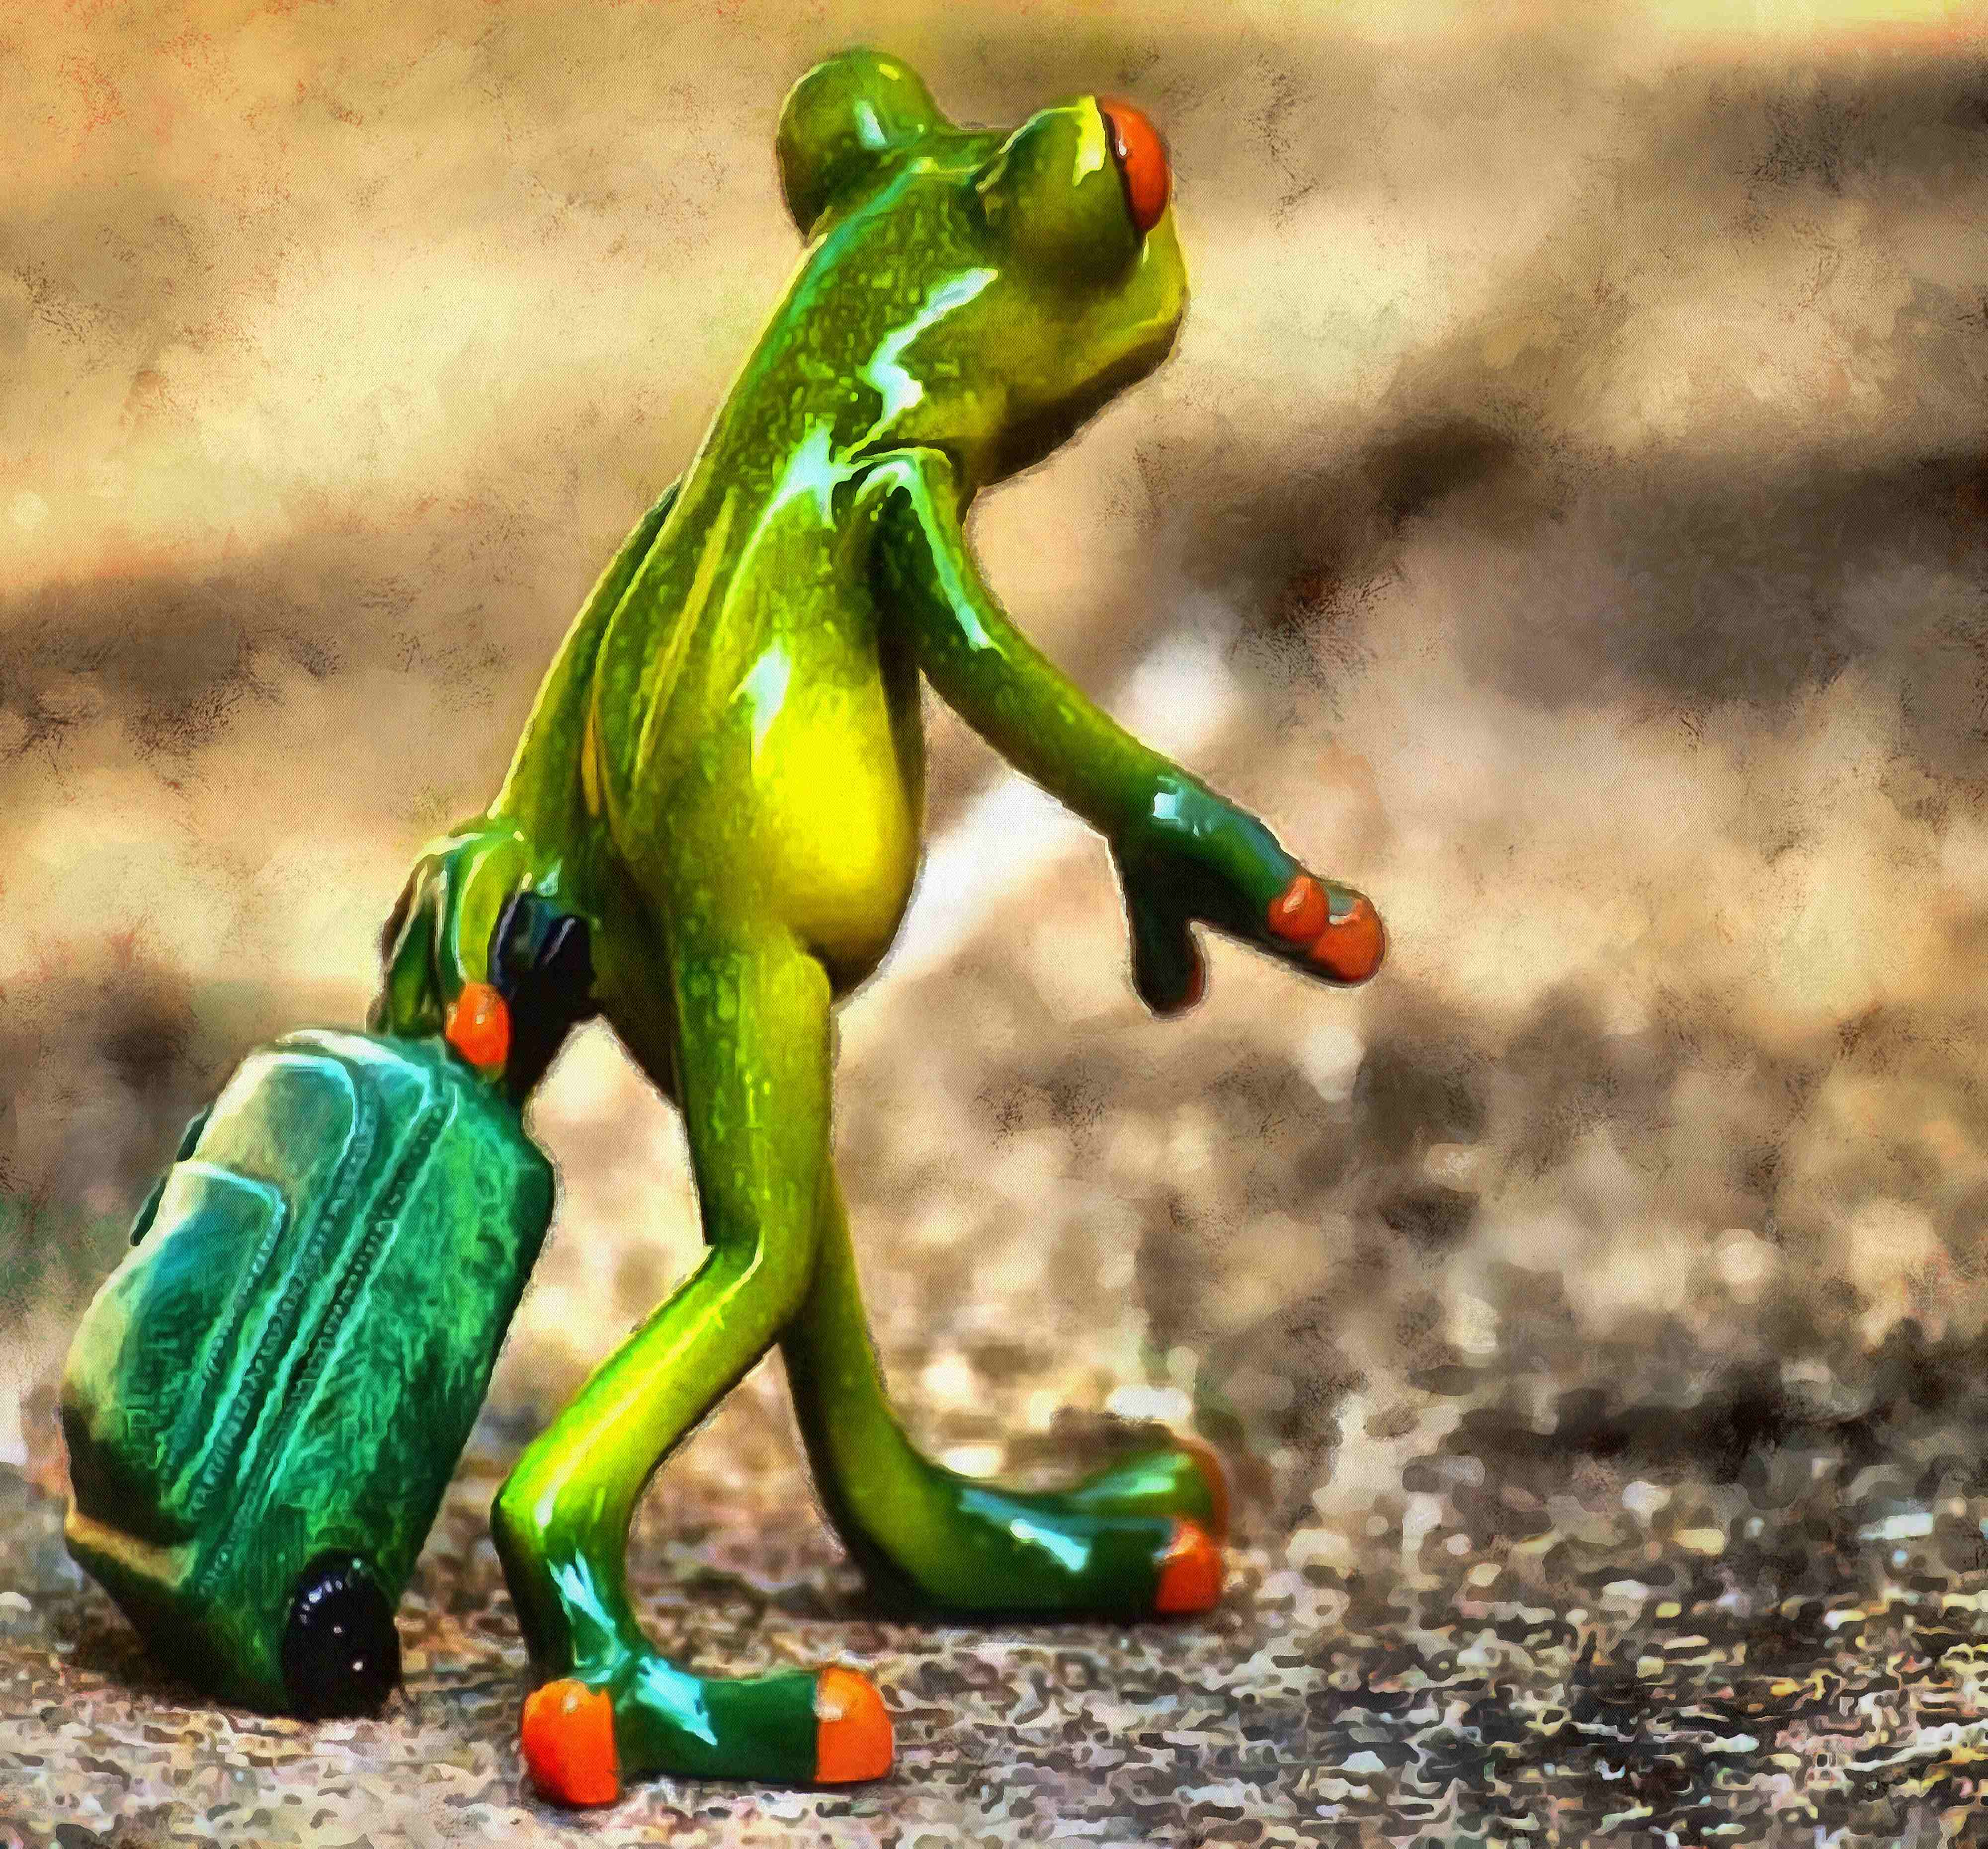 Green frog, frog, from traveller, free stock frog image, frog free photo